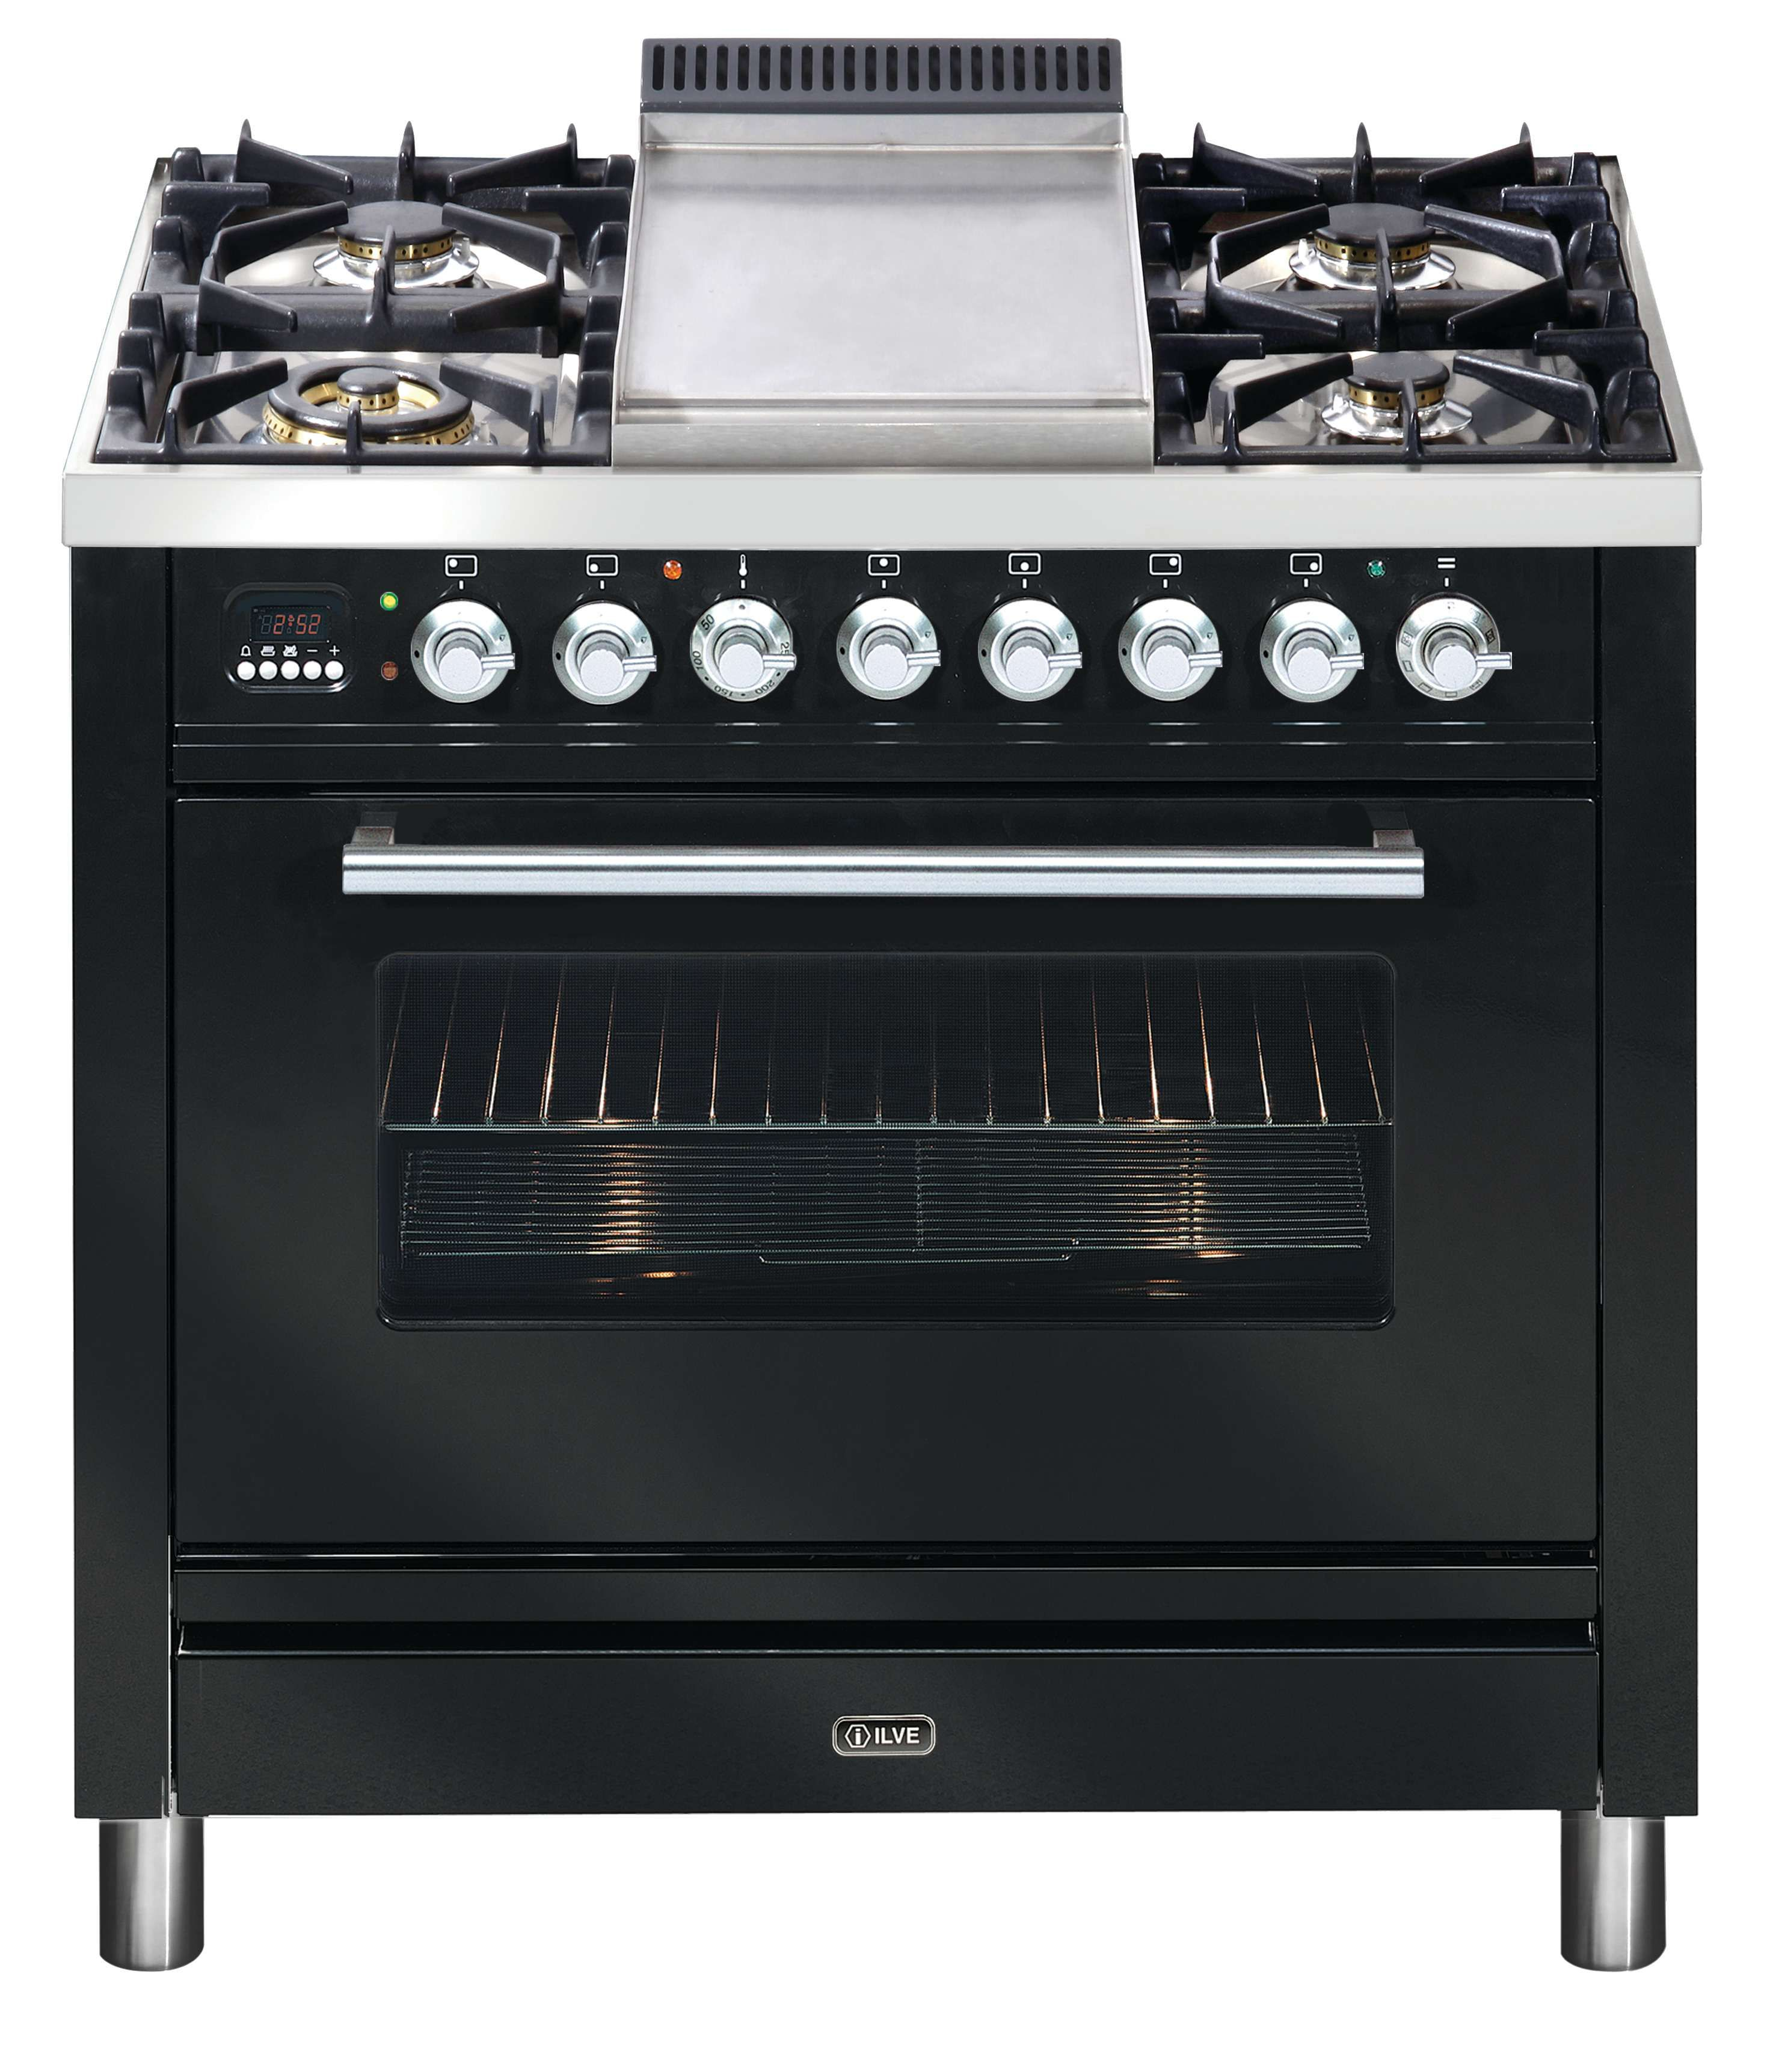 ILVE 90cm Quadra Oven in Gloss Black with Teppanyaki Hot Plate ...